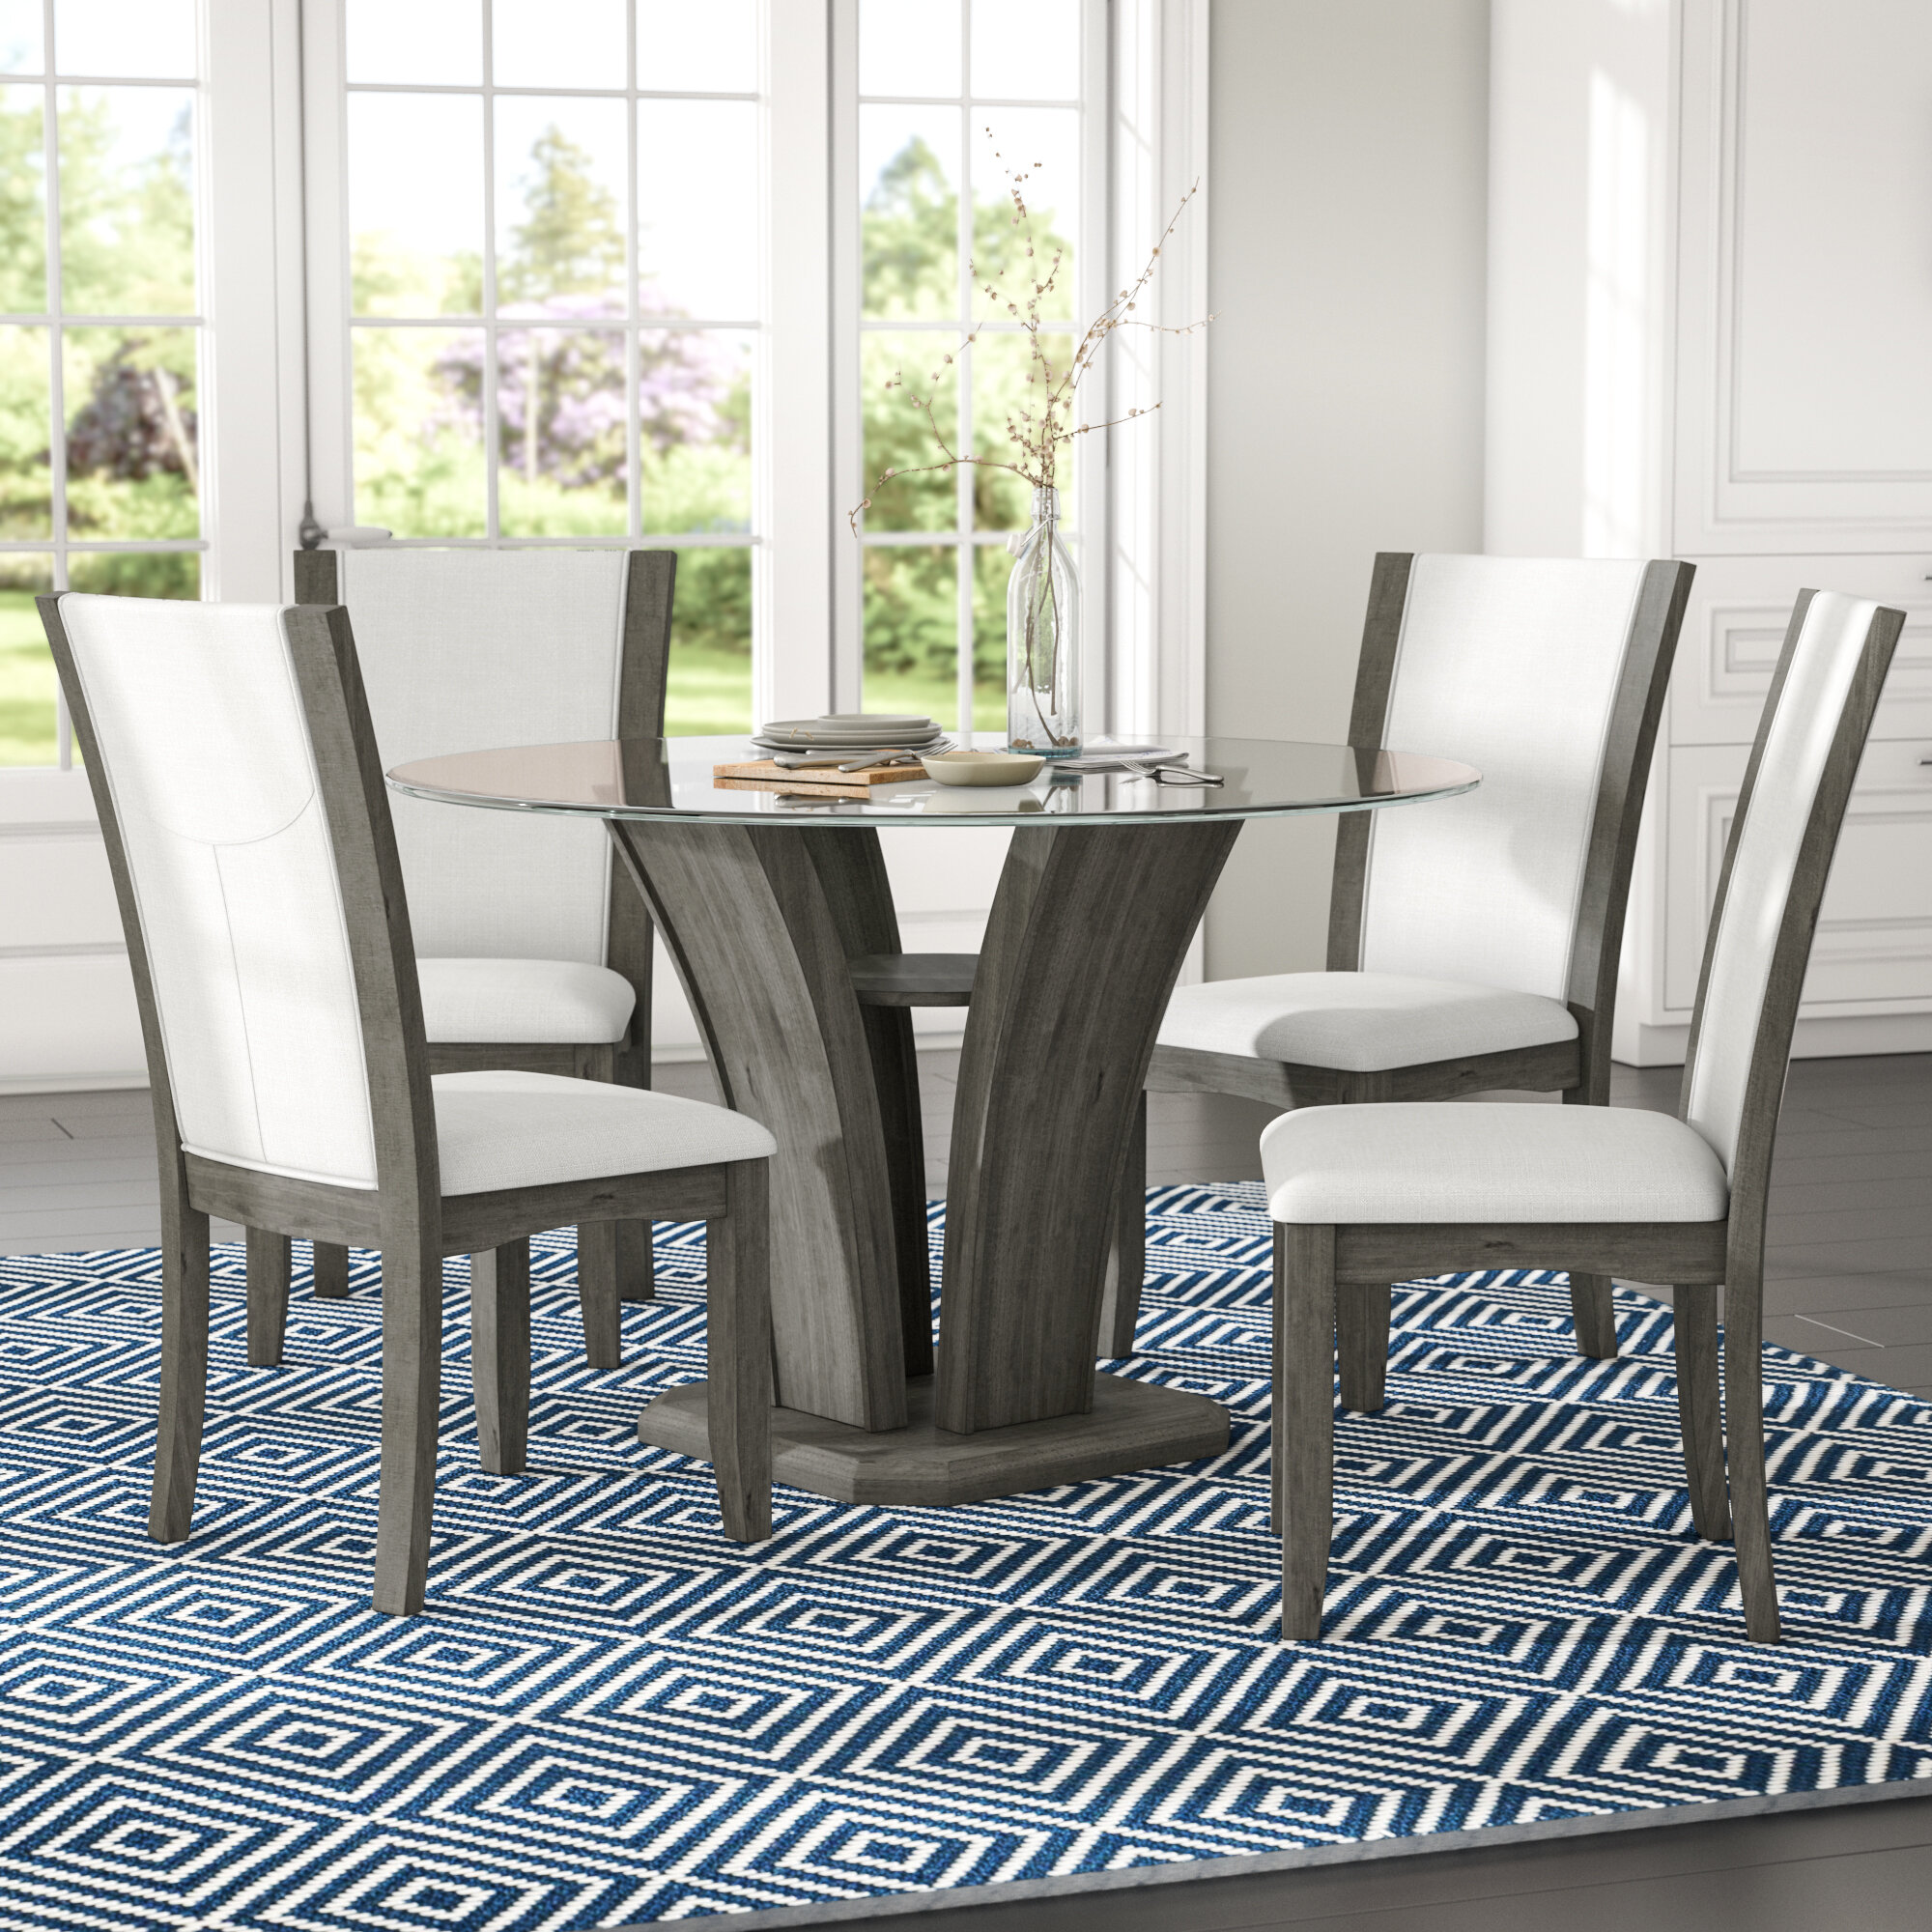 Delicieux Brayden Studio Kangas 5 Piece Glass Top Dining Set U0026 Reviews | Wayfair